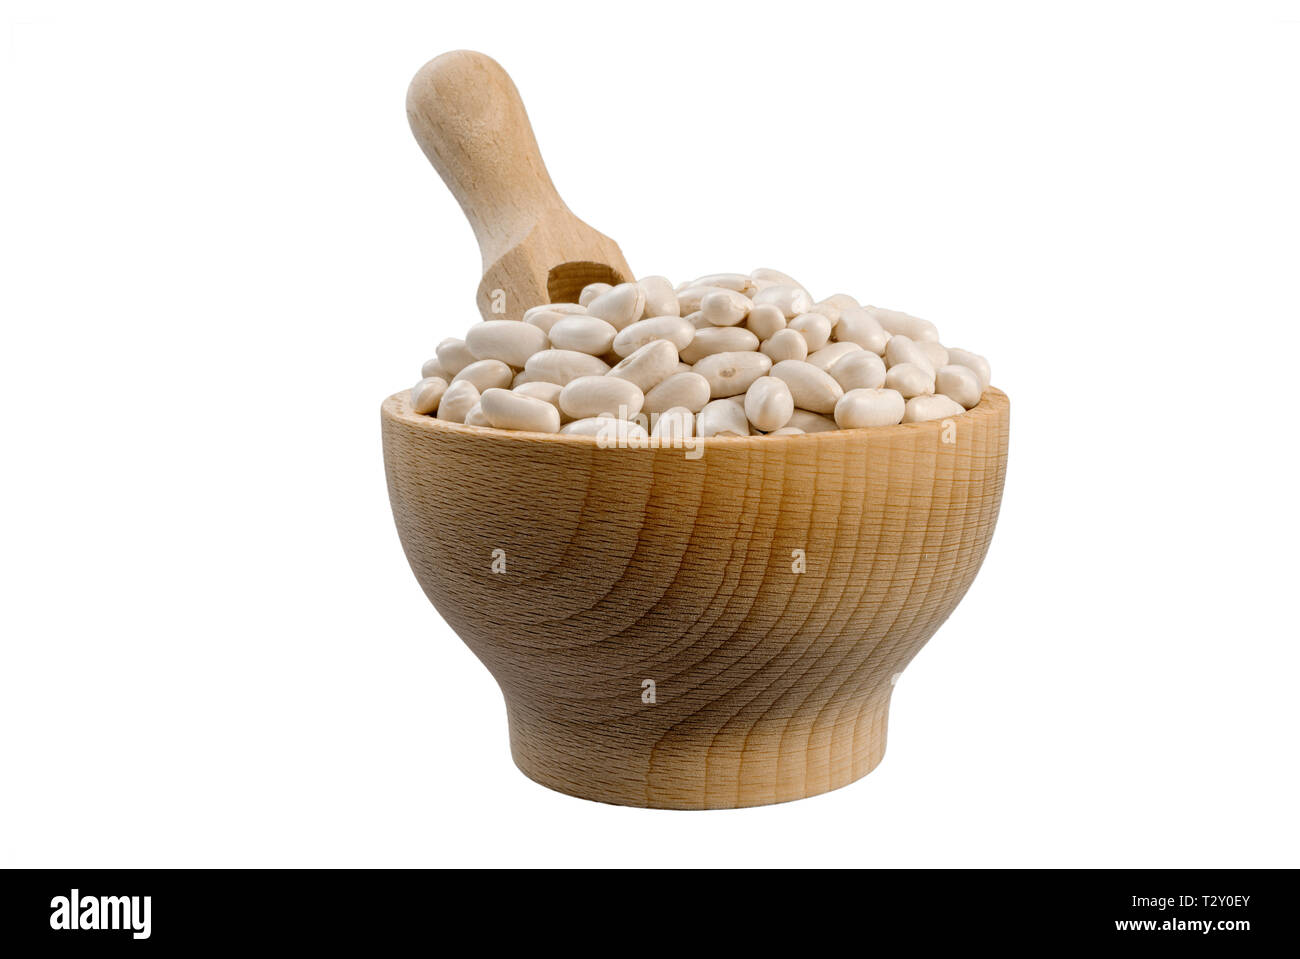 White Bean in wooden bowl and scoop isolated on white background. nutrition. bio. natural food ingredient. - Stock Image